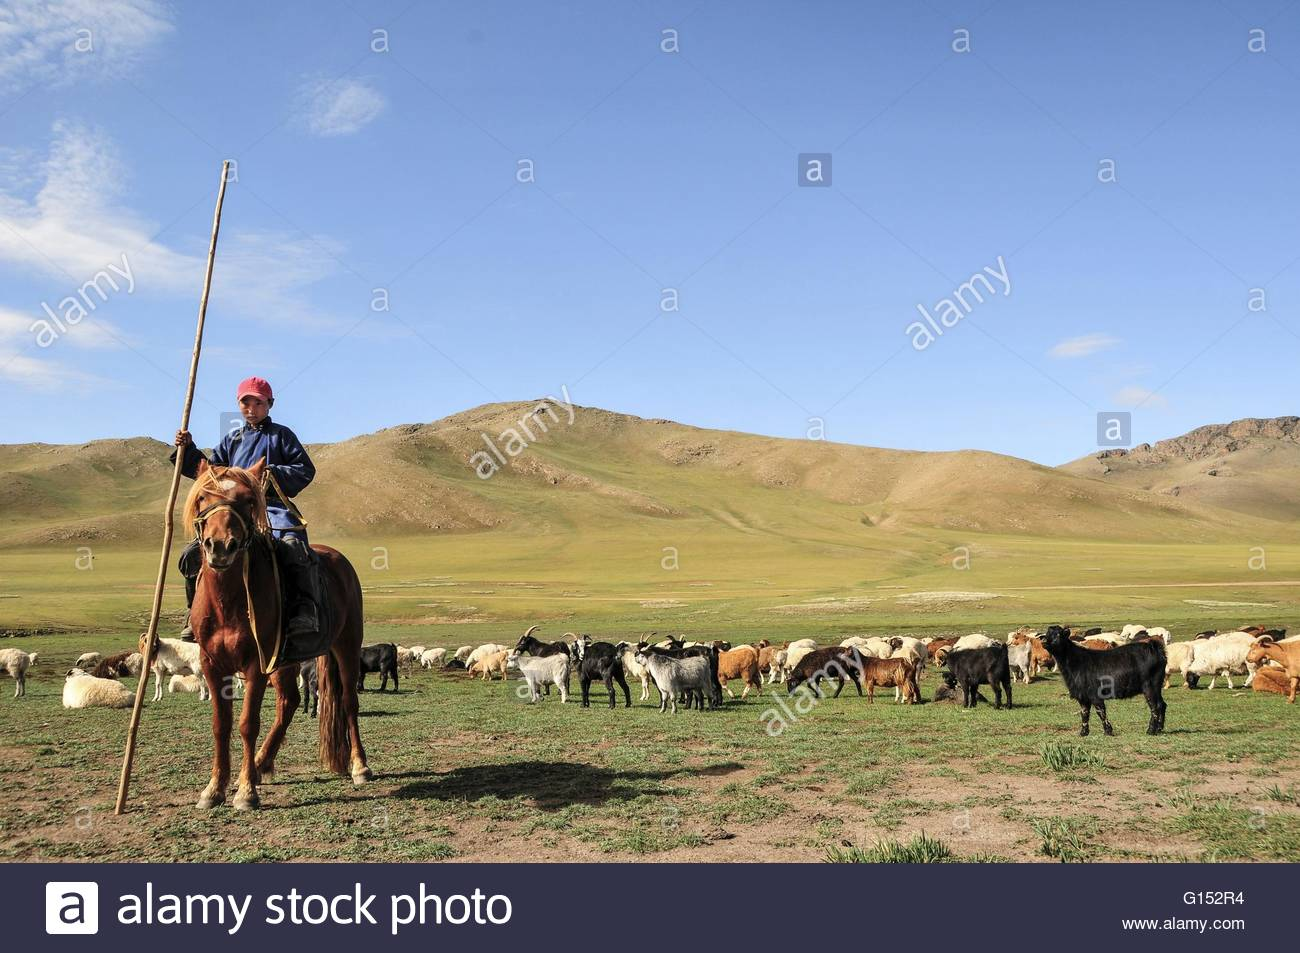 Mongolia, horserider and herd of sheeps and goats - Stock Image